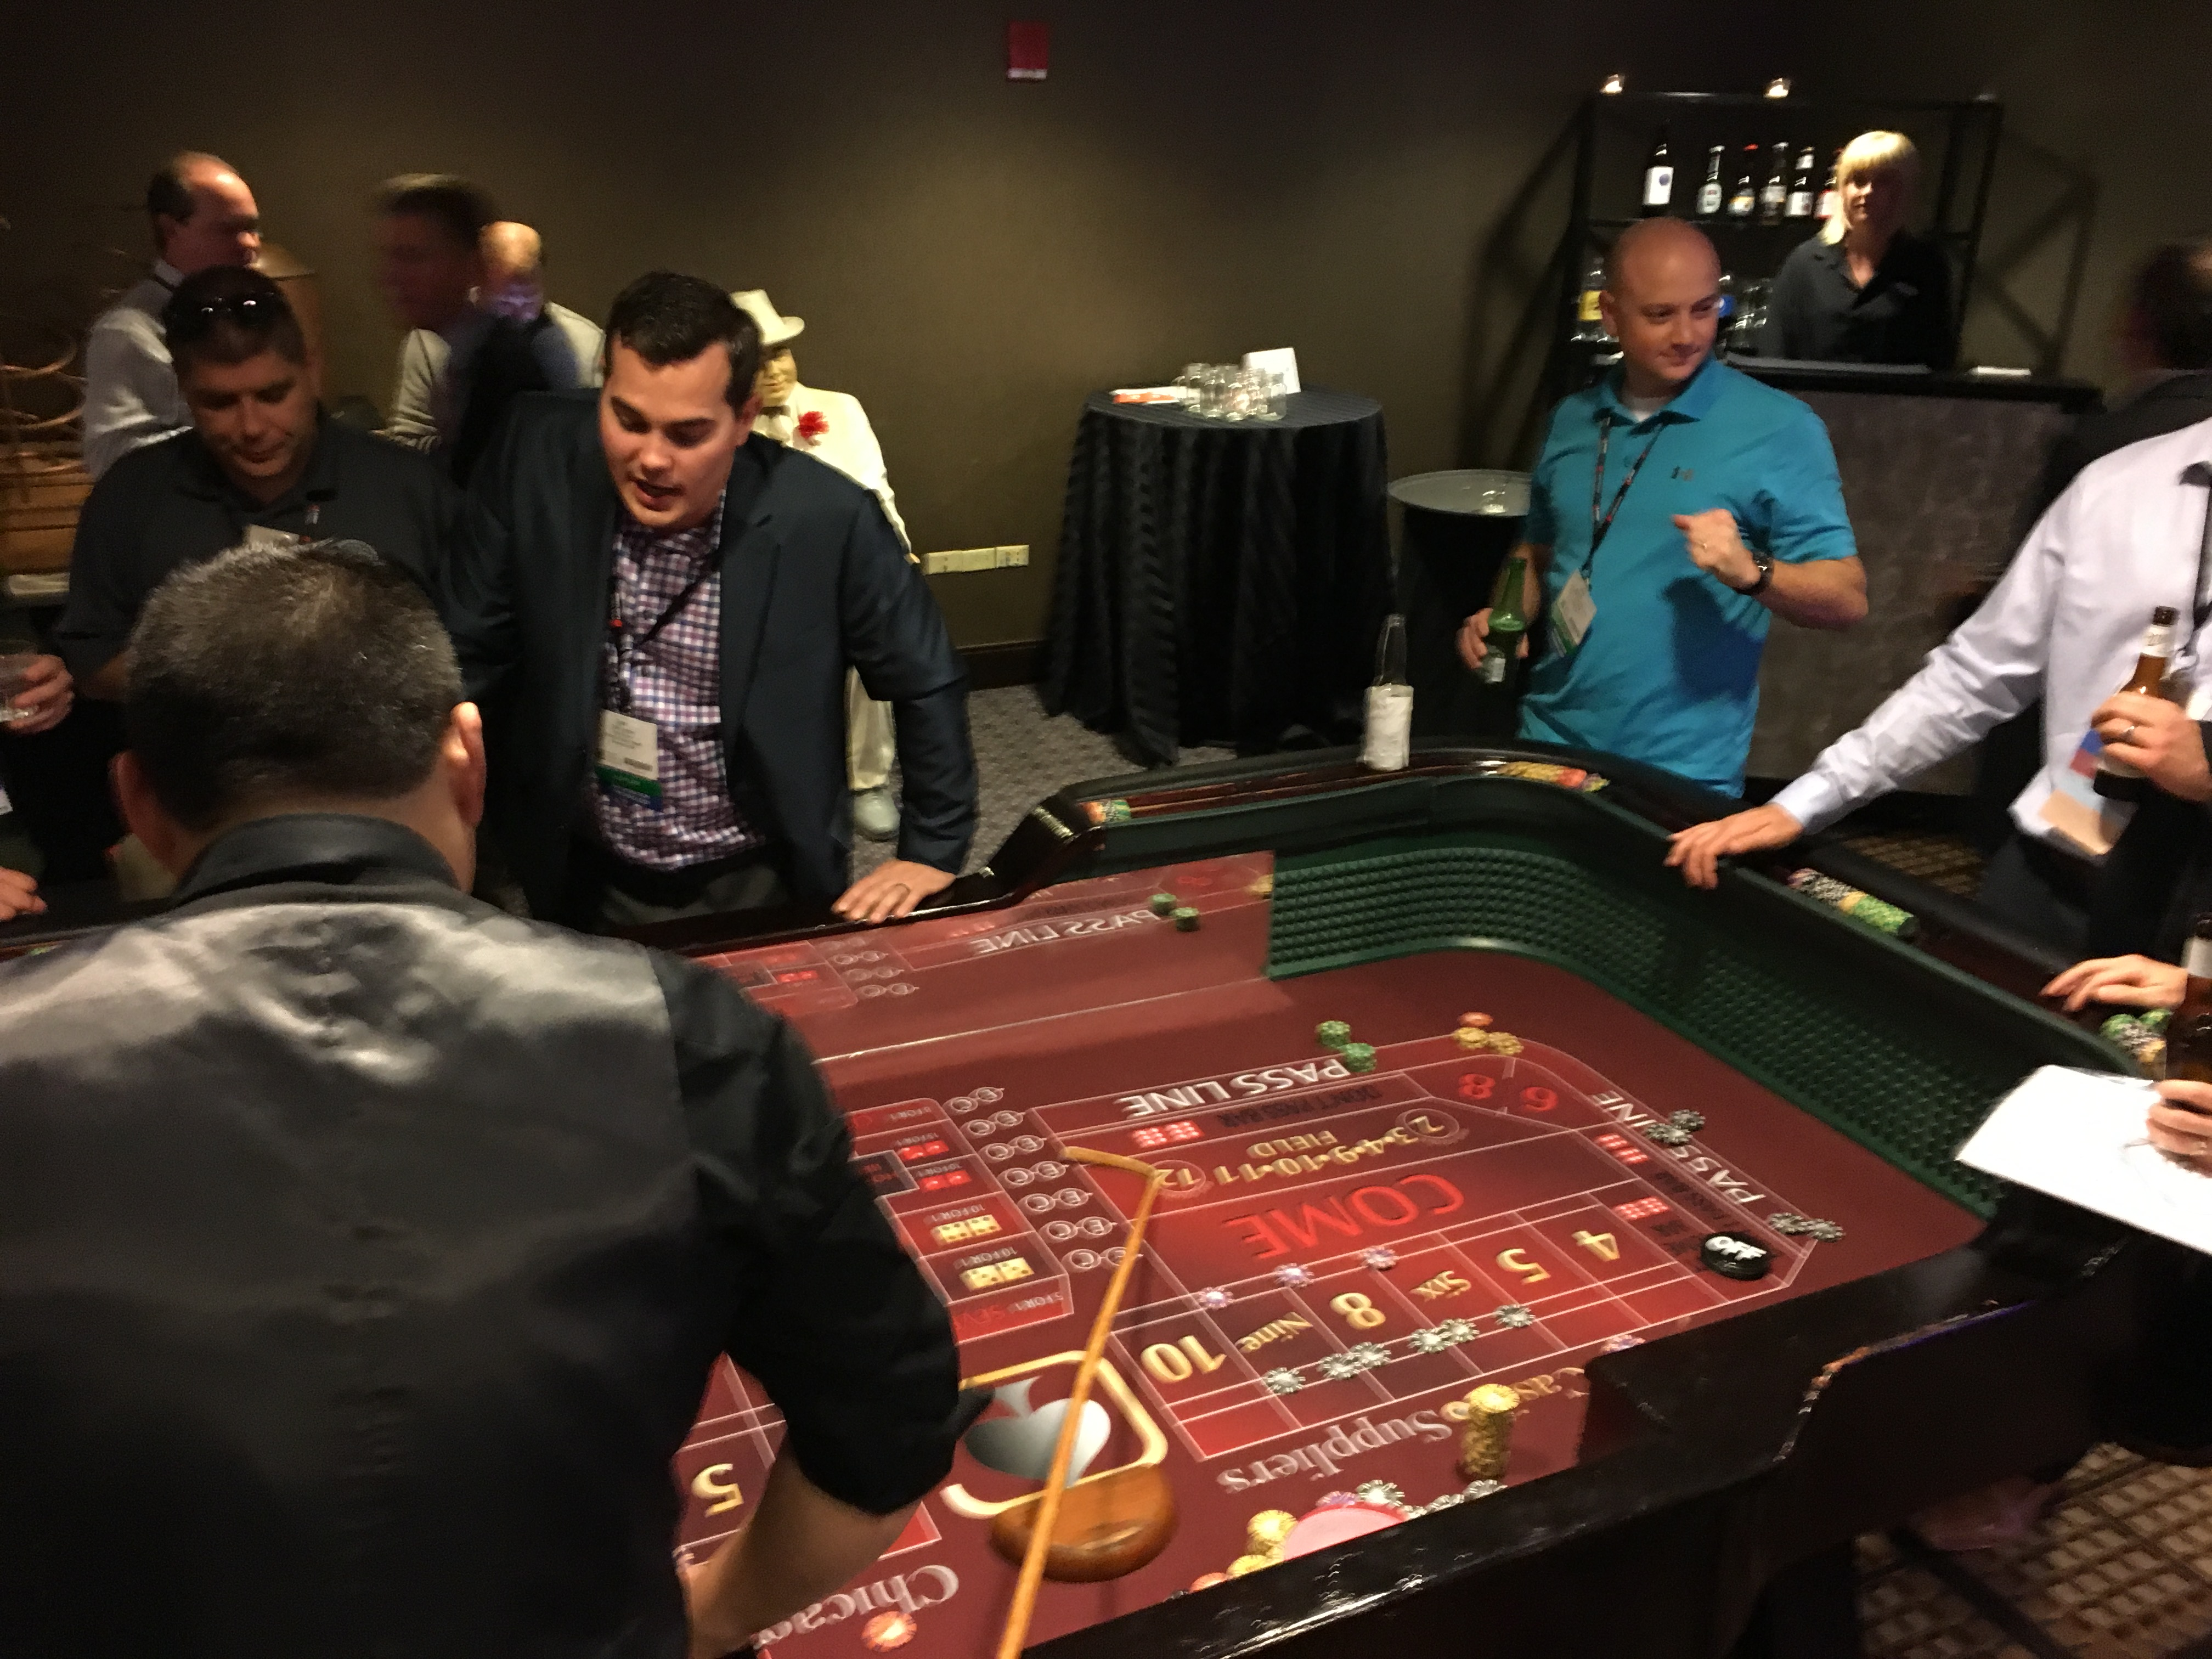 casino marketing group toronto ardith